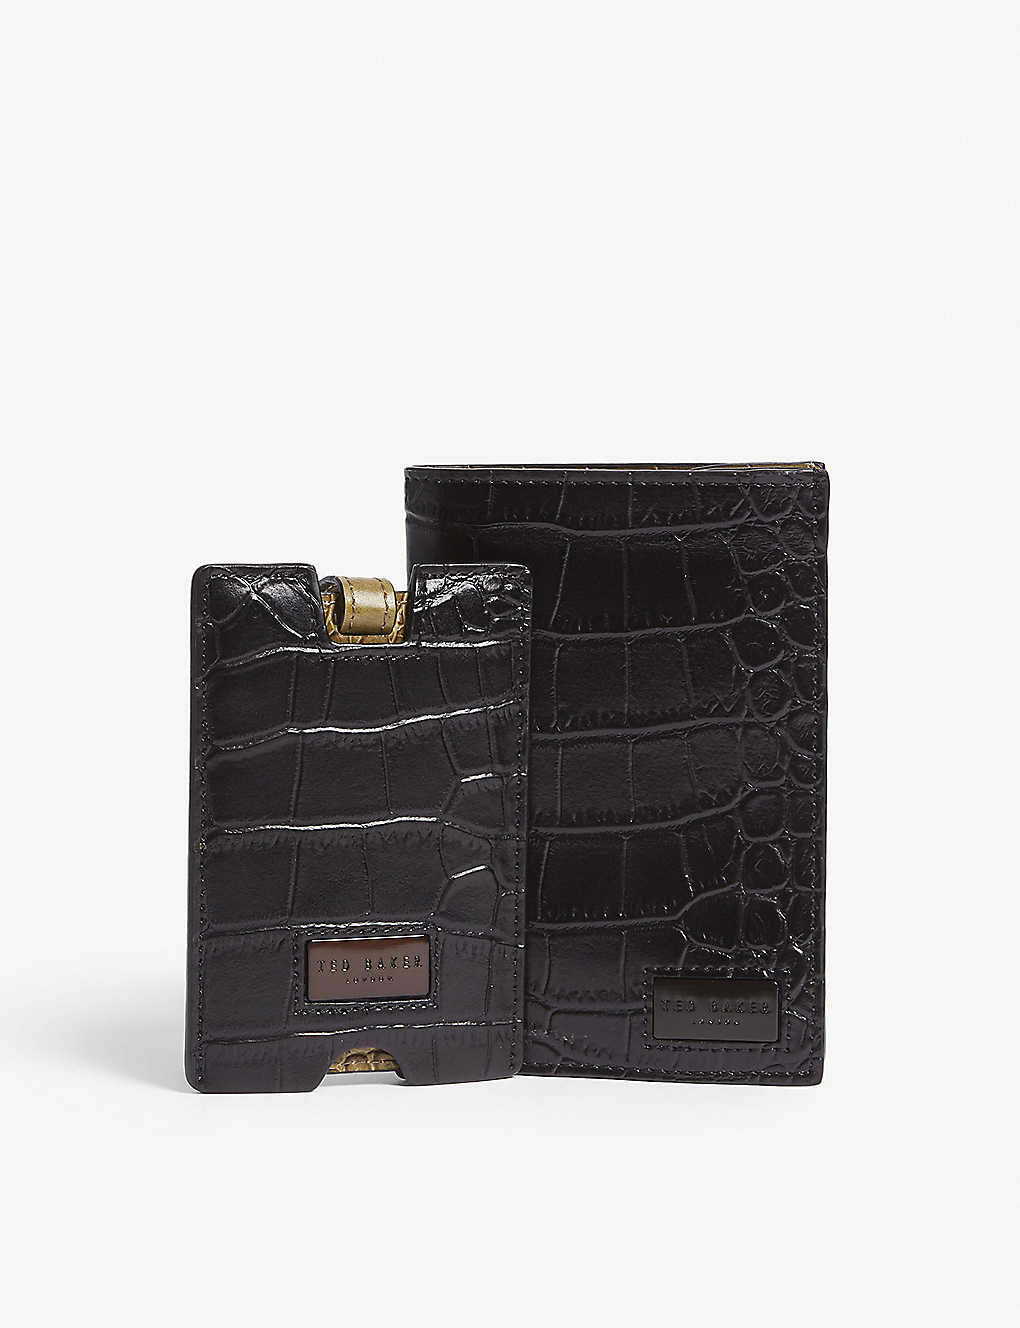 a958cf18b2e8 TED BAKER - Leather passport holder and luggage tag gift set ...